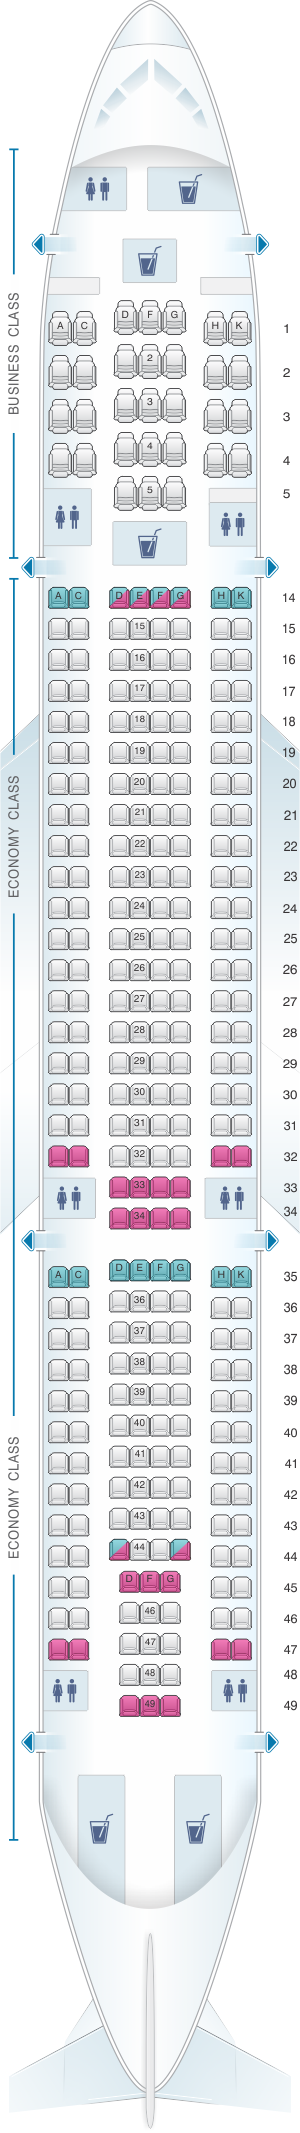 Seat map for Hi Fly Airbus A330 200 298pax